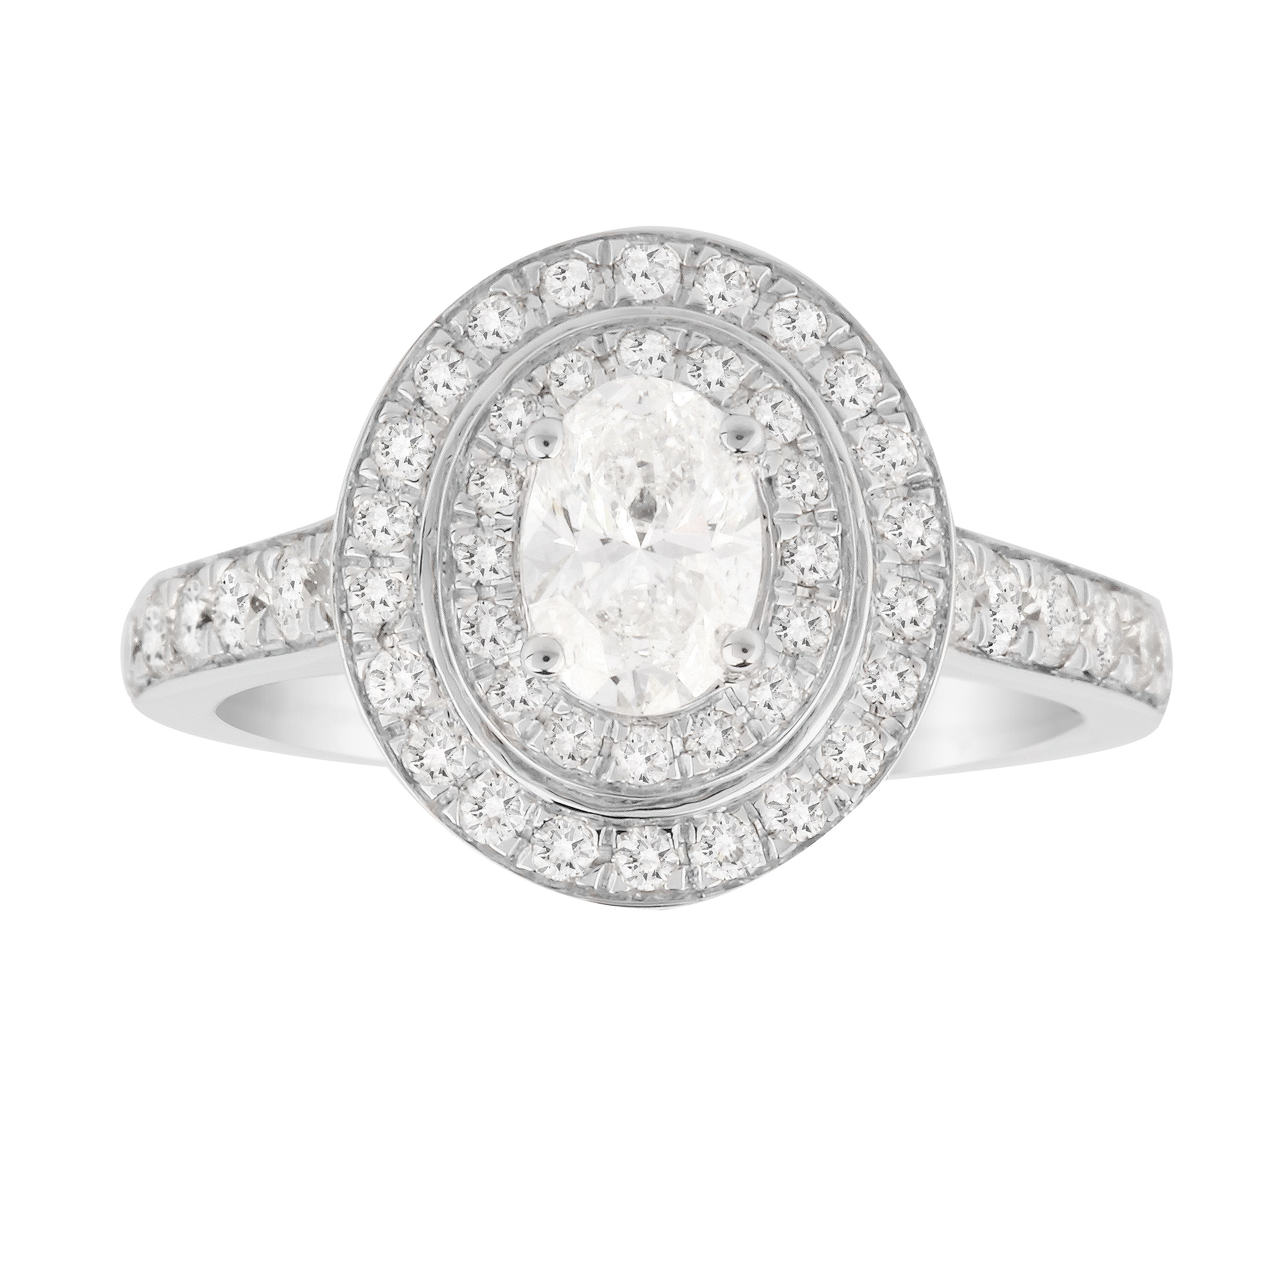 Jenny Packham Oval Cut 1.20 Carat Total Weight Double Halo Diamond Ring in 18 Carat White & Rose Gol